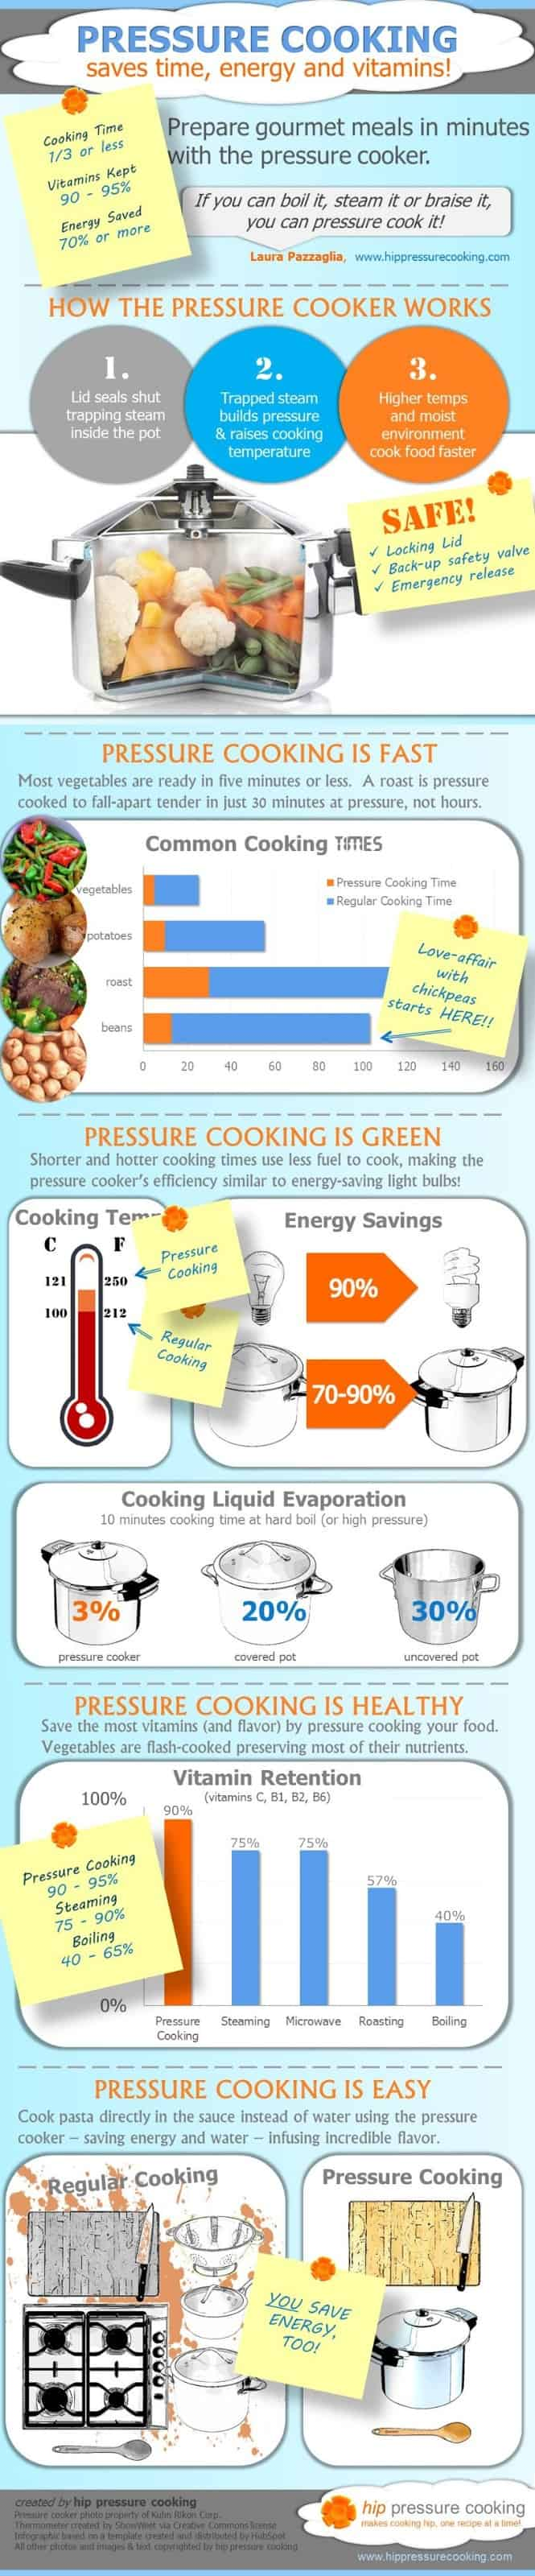 Why use a pressure cooker?With so many small kitchen appliances available, people often ask what the benefits are to using an Instant Pot multi-cooker. This infographic explains the benefits of cooking in a multi-cooker (Instant Pot) or electric pressure cooker.